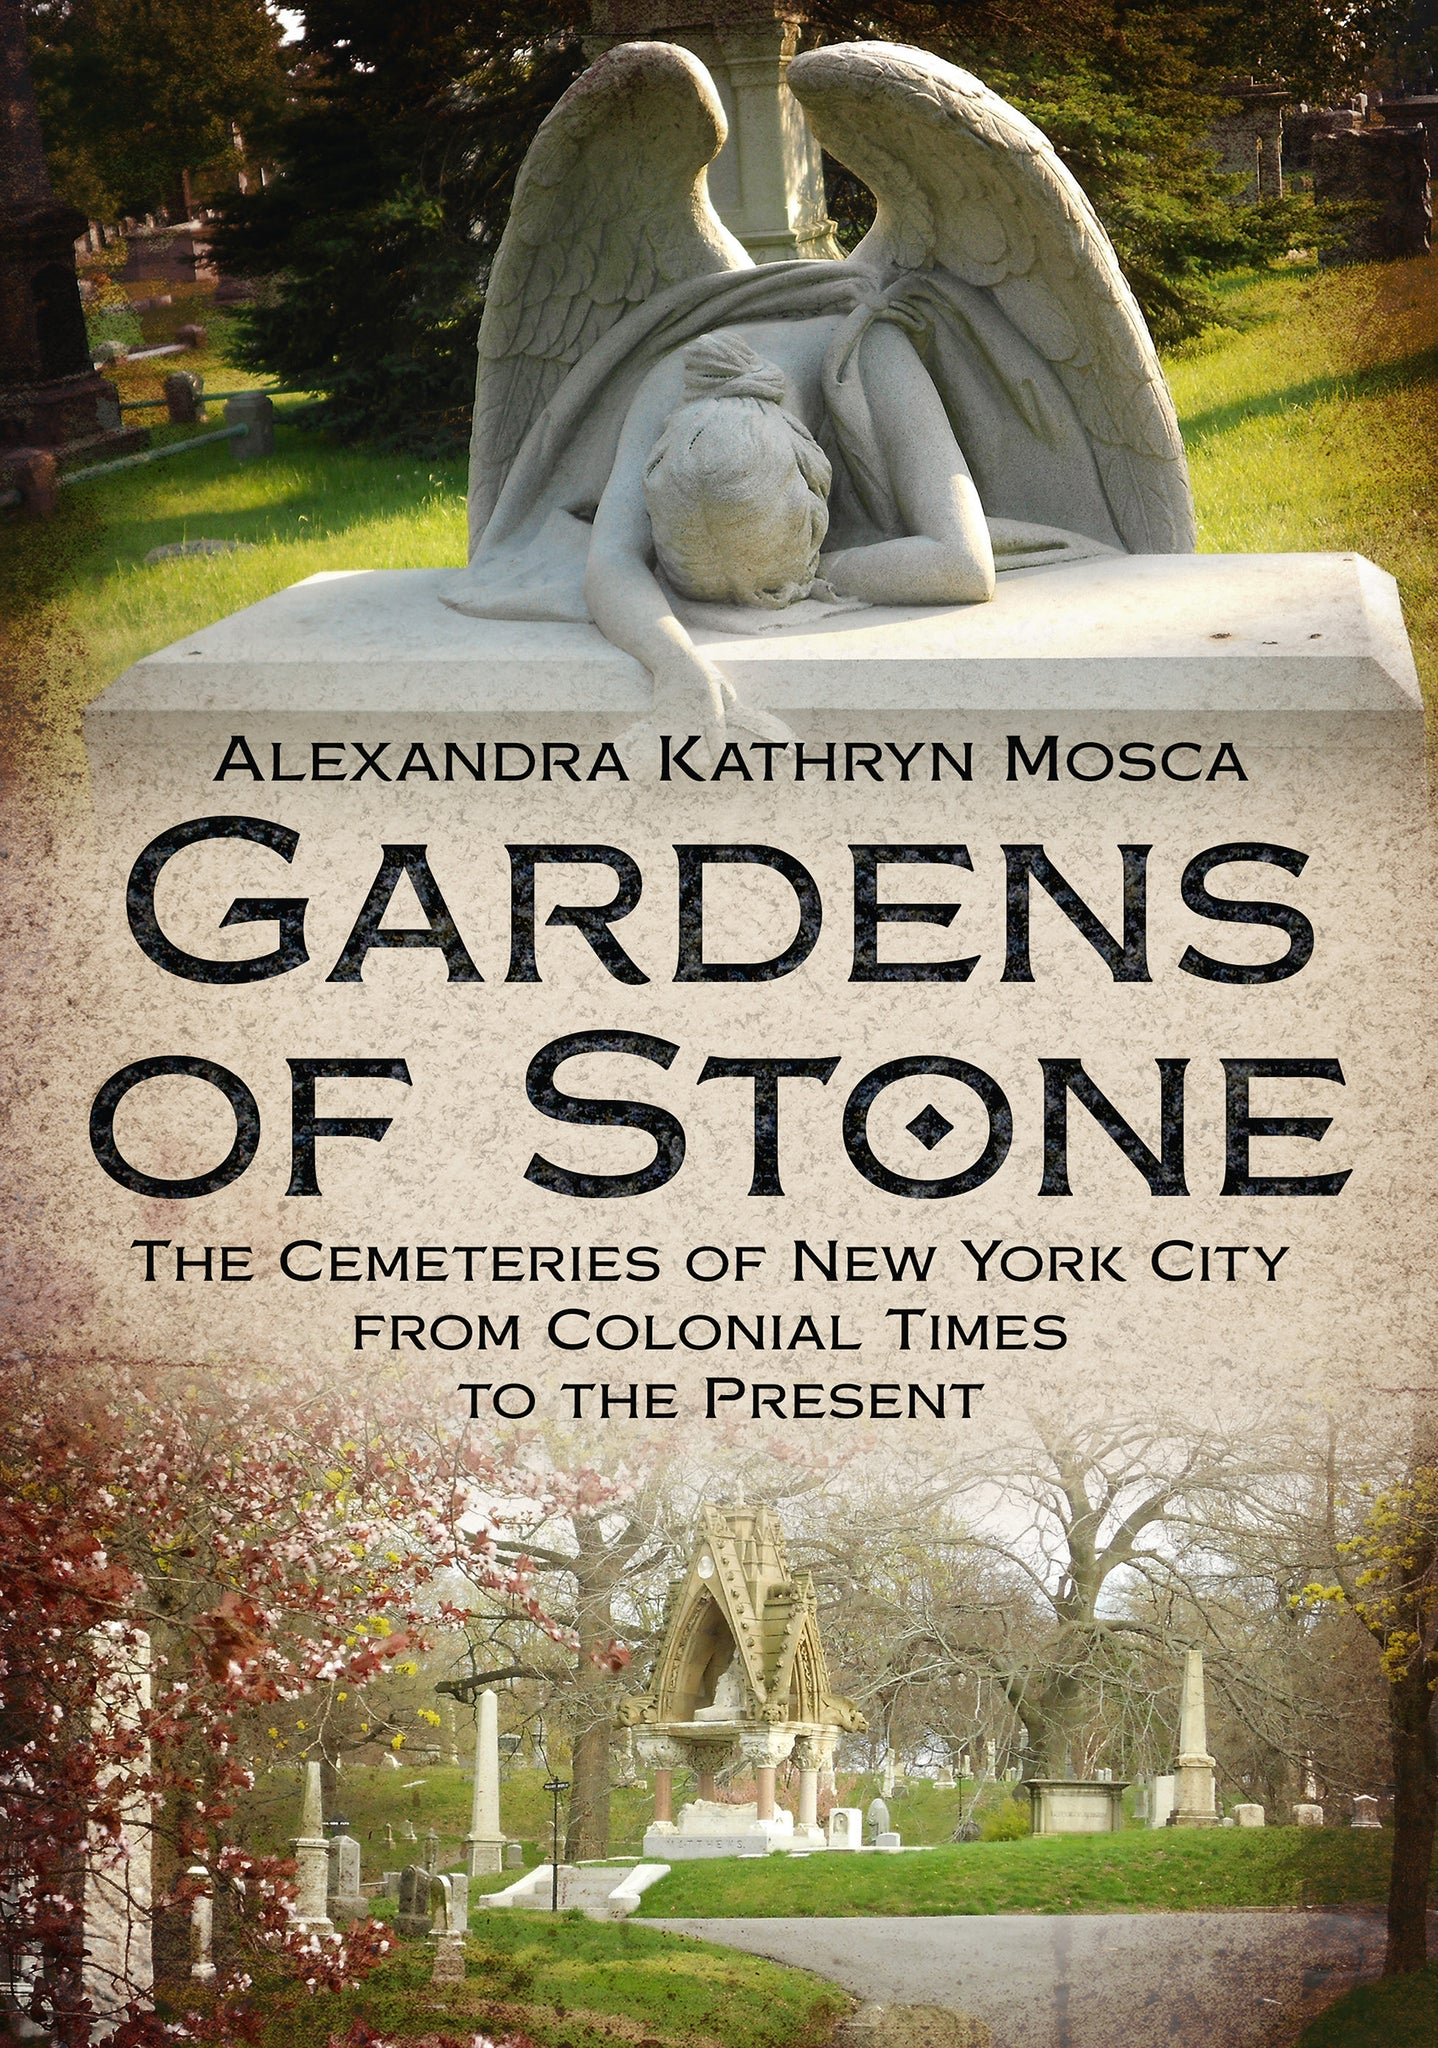 Gardens of Stone: The Cemeteries of New York City from Colonial Times to the Present